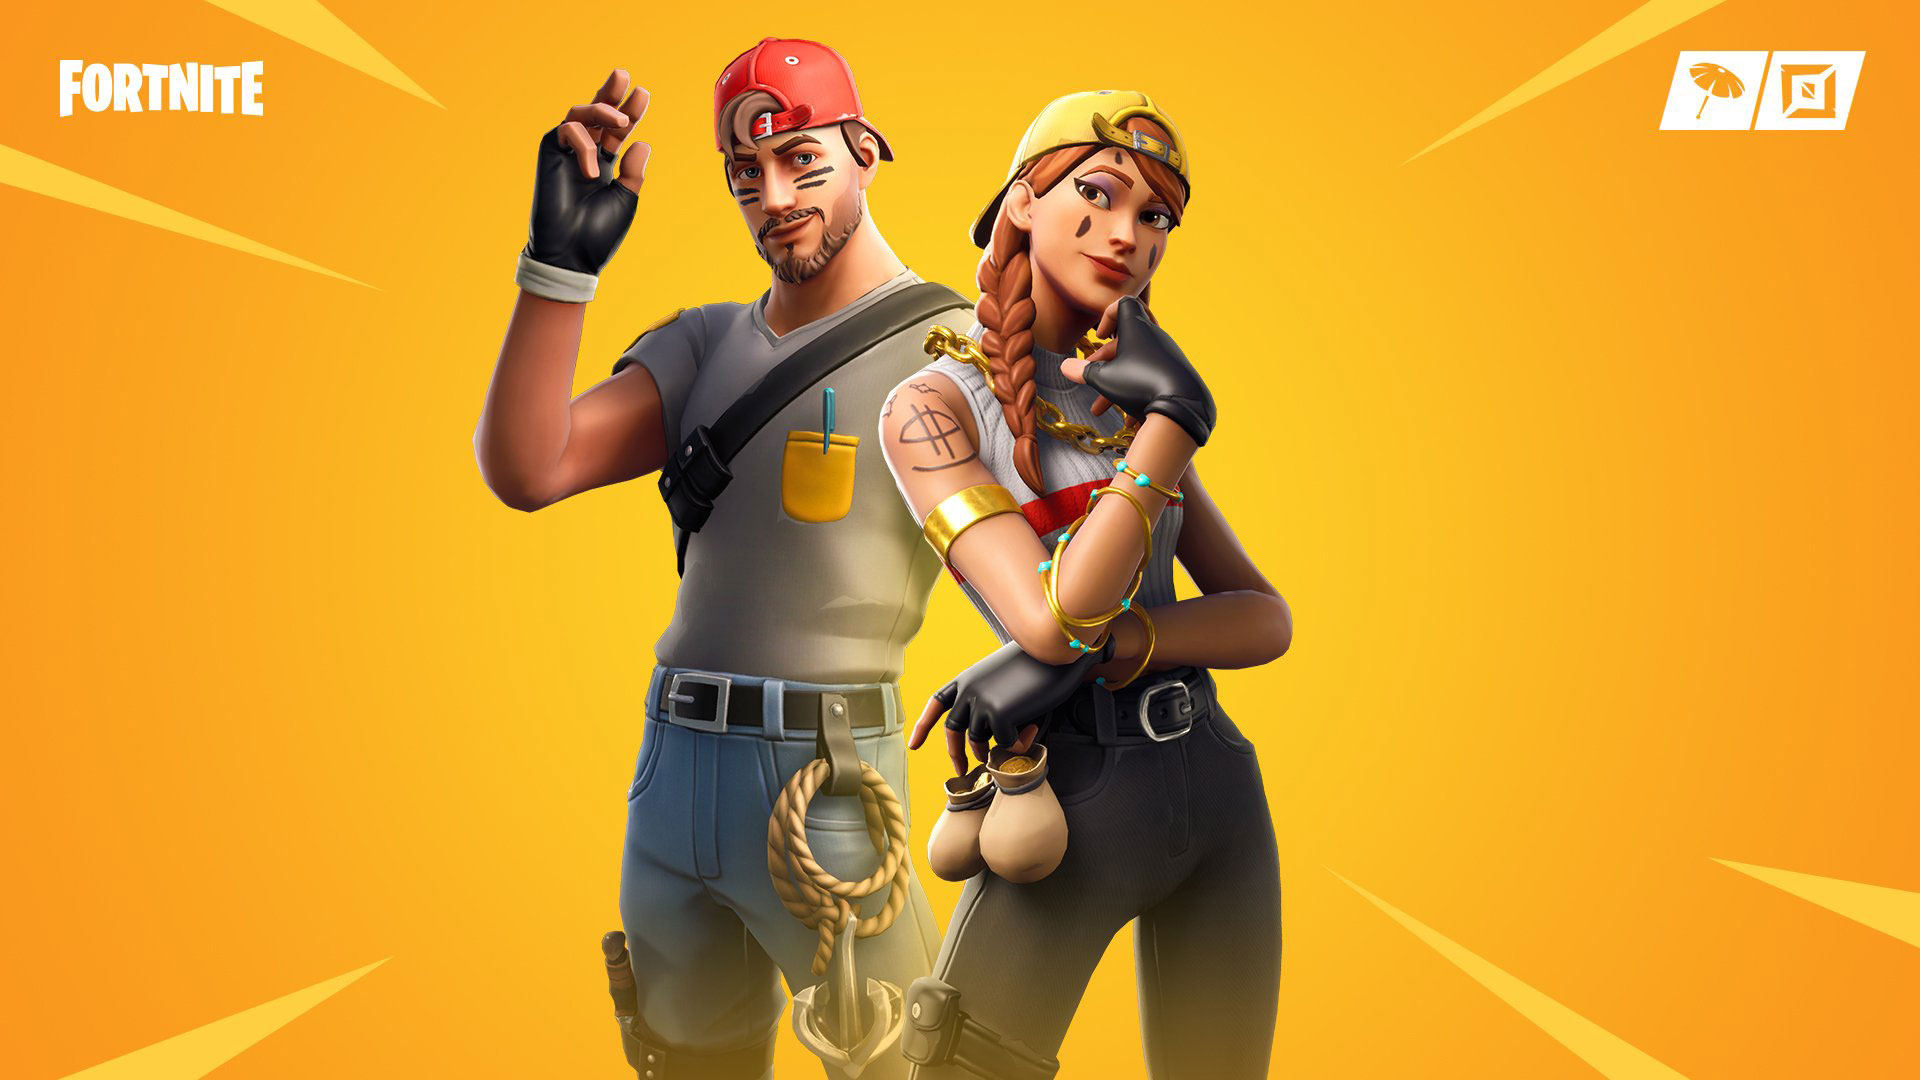 Fortnite Aura Skin - Character, PNG, Images - Pro Game Guides